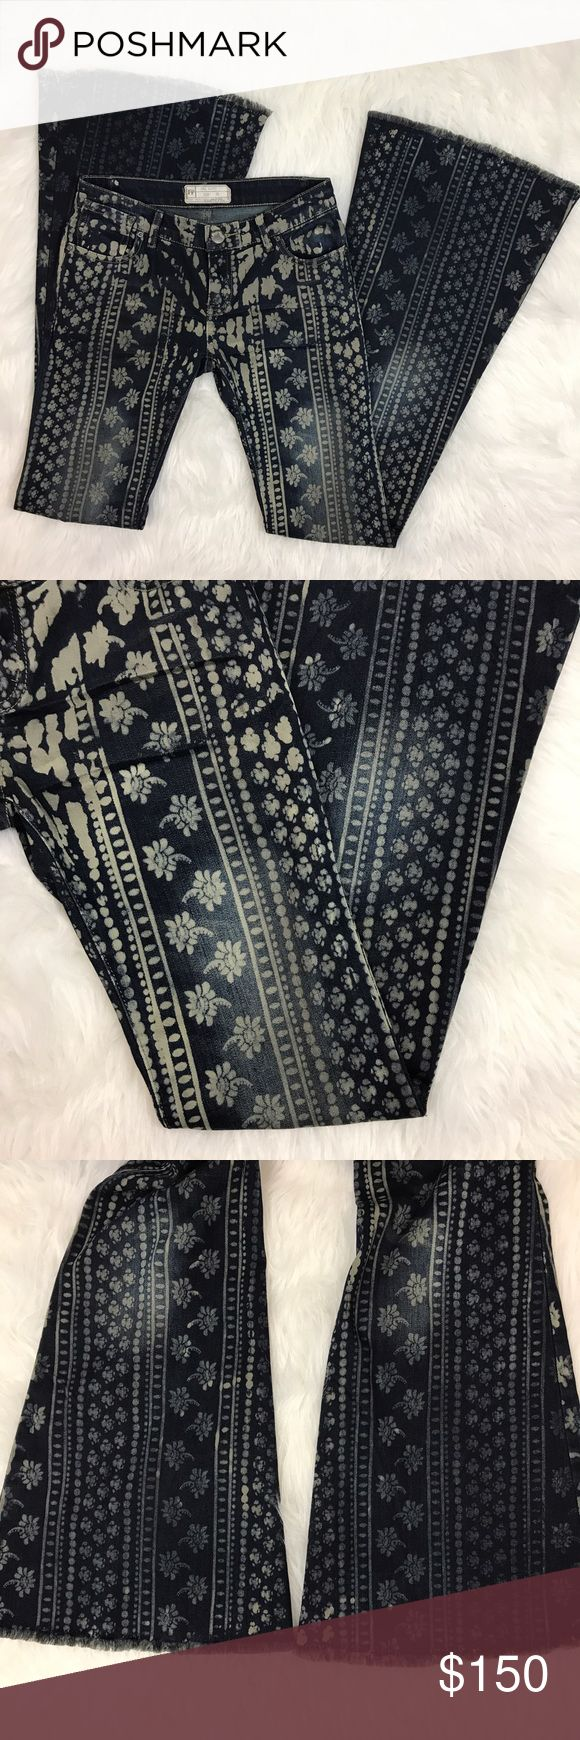 "Rare Free people Bali Flare Floral Festival Jean Have a gently used rare awesome festival print Free People Bali Flare pants. Dark wash, distressed, Floral abstract print. Boho. No flaws. Size 25  Waist: 27""  Inseam: 33"" Free People Jeans Flare & Wide Leg"